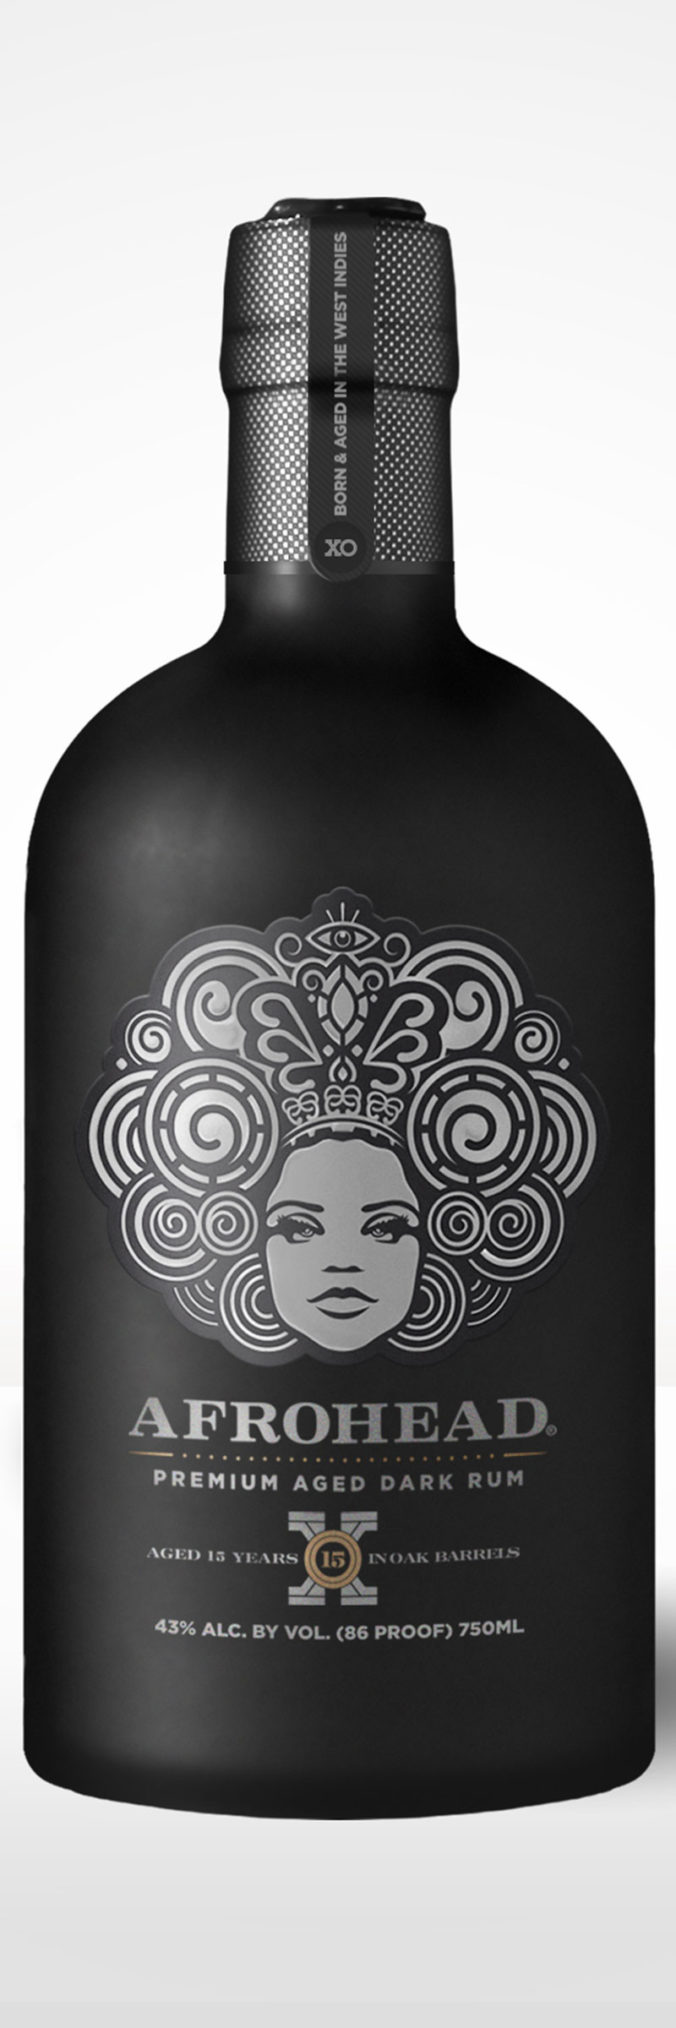 Afrohead Extra Old aged rum from Trinidad